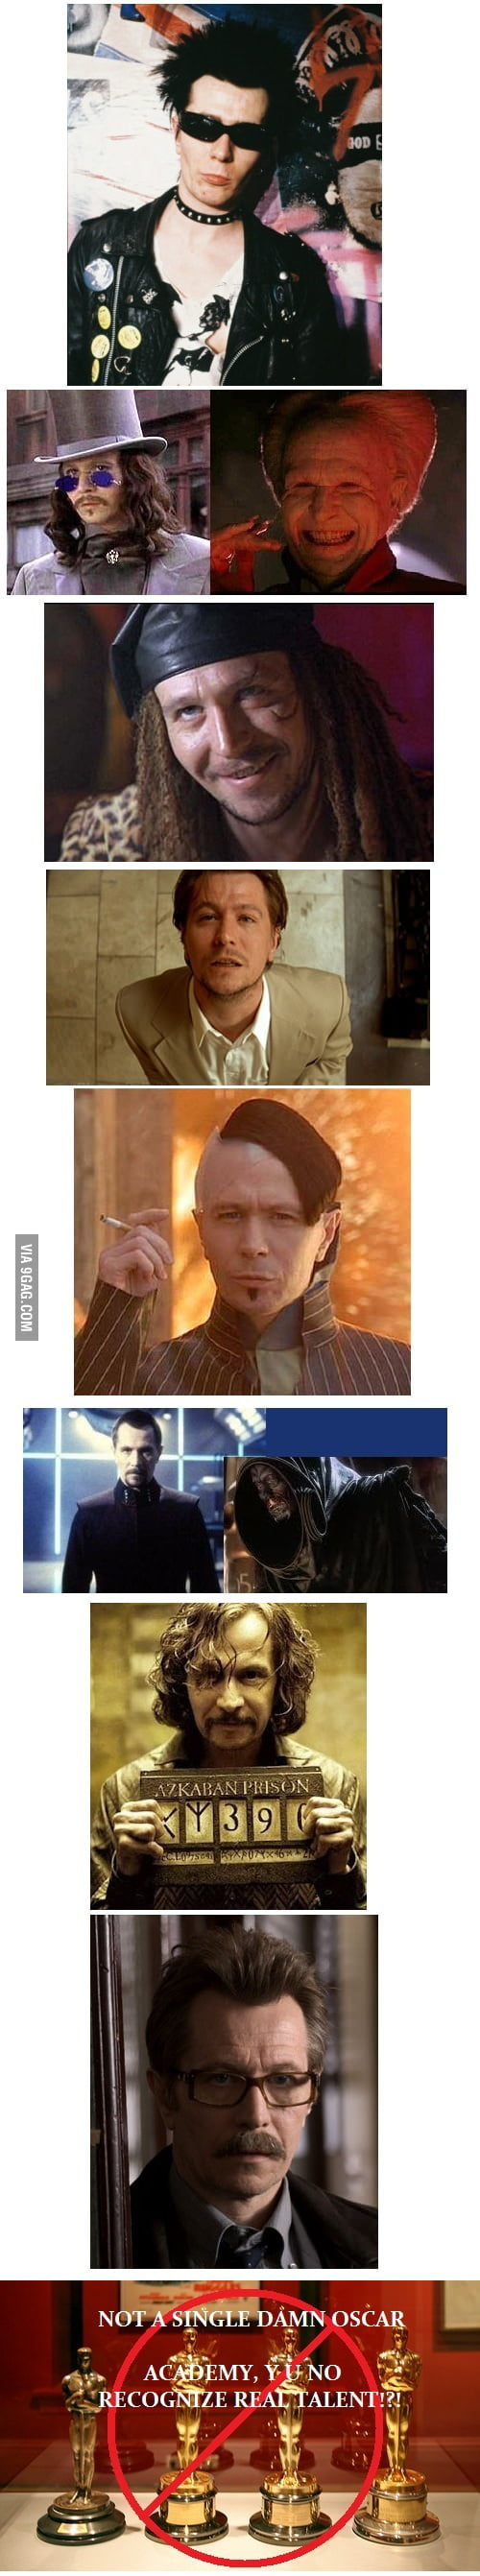 Show some love for Gary Oldman!